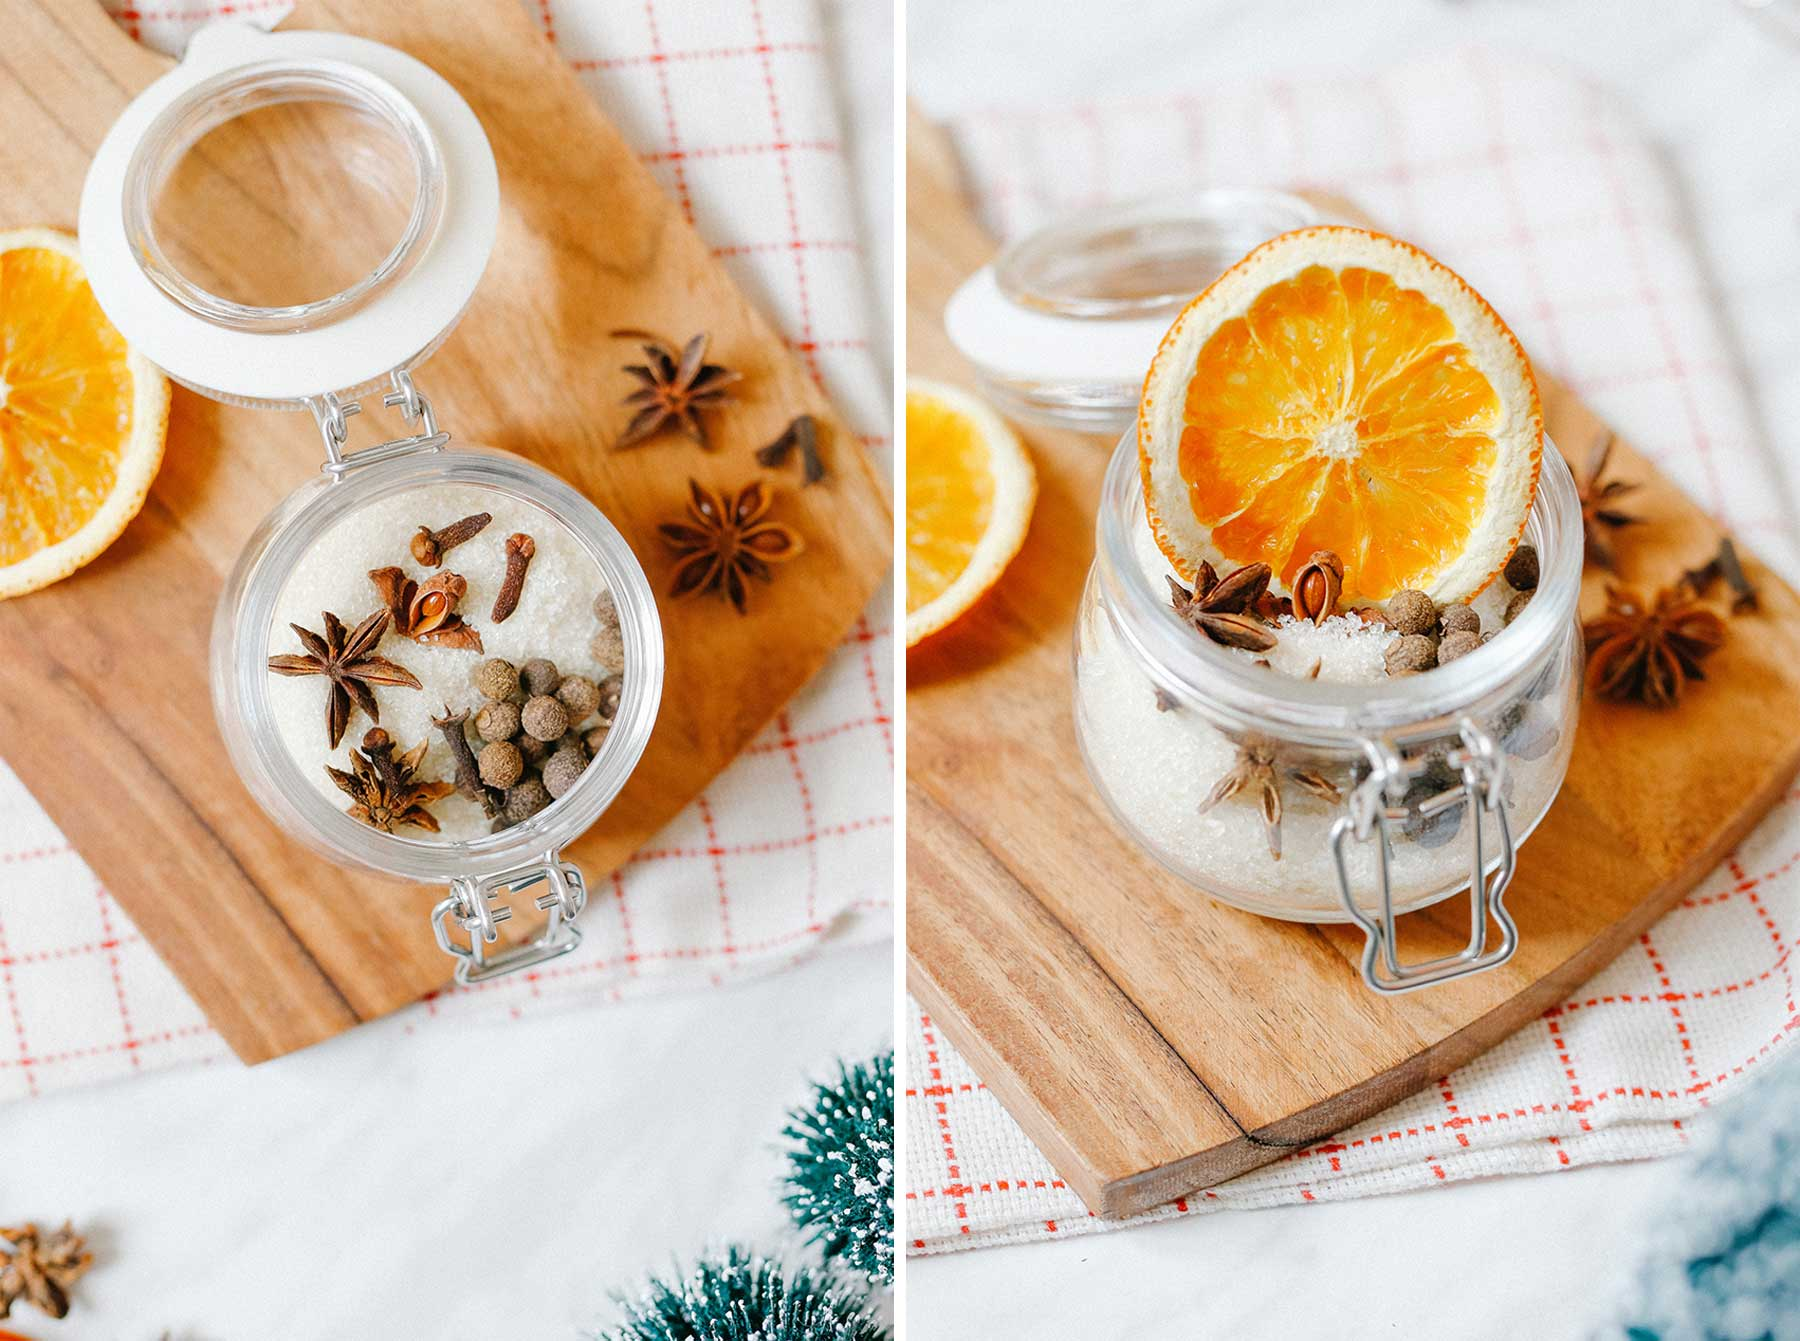 DIY Merry Mulled WIne Spice Jar